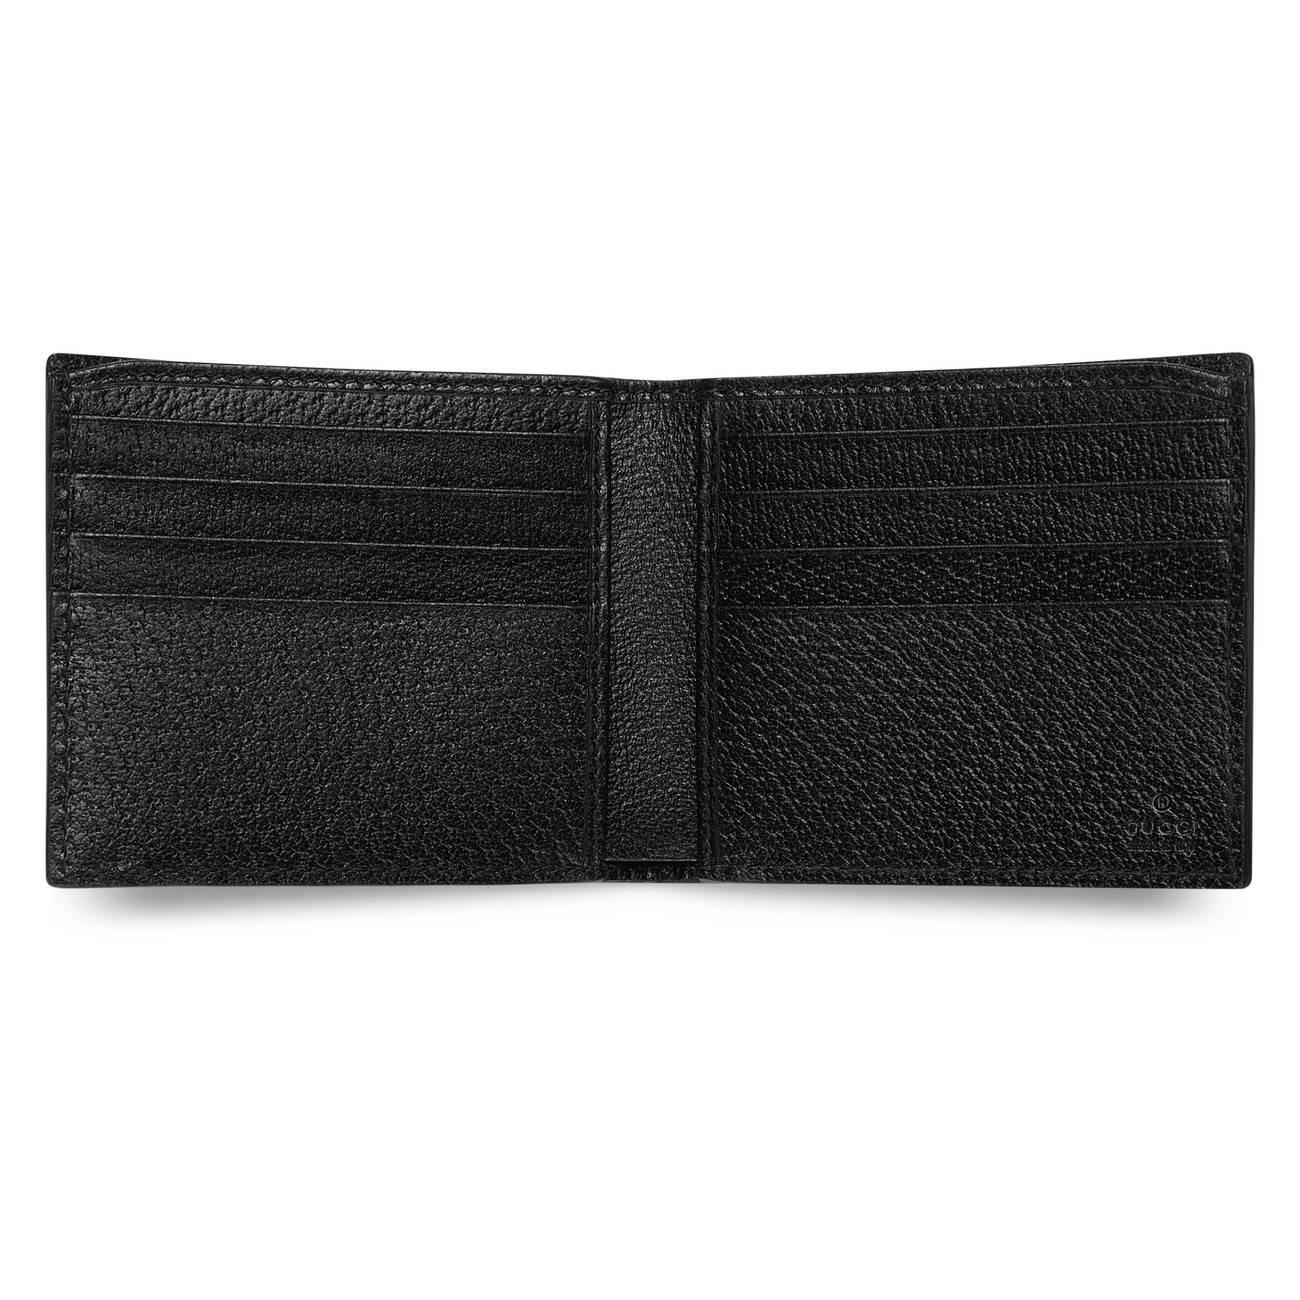 7548e004632124 Gucci Bee Star Leather Bi-fold Wallet in Black for Men - Save 20% - Lyst